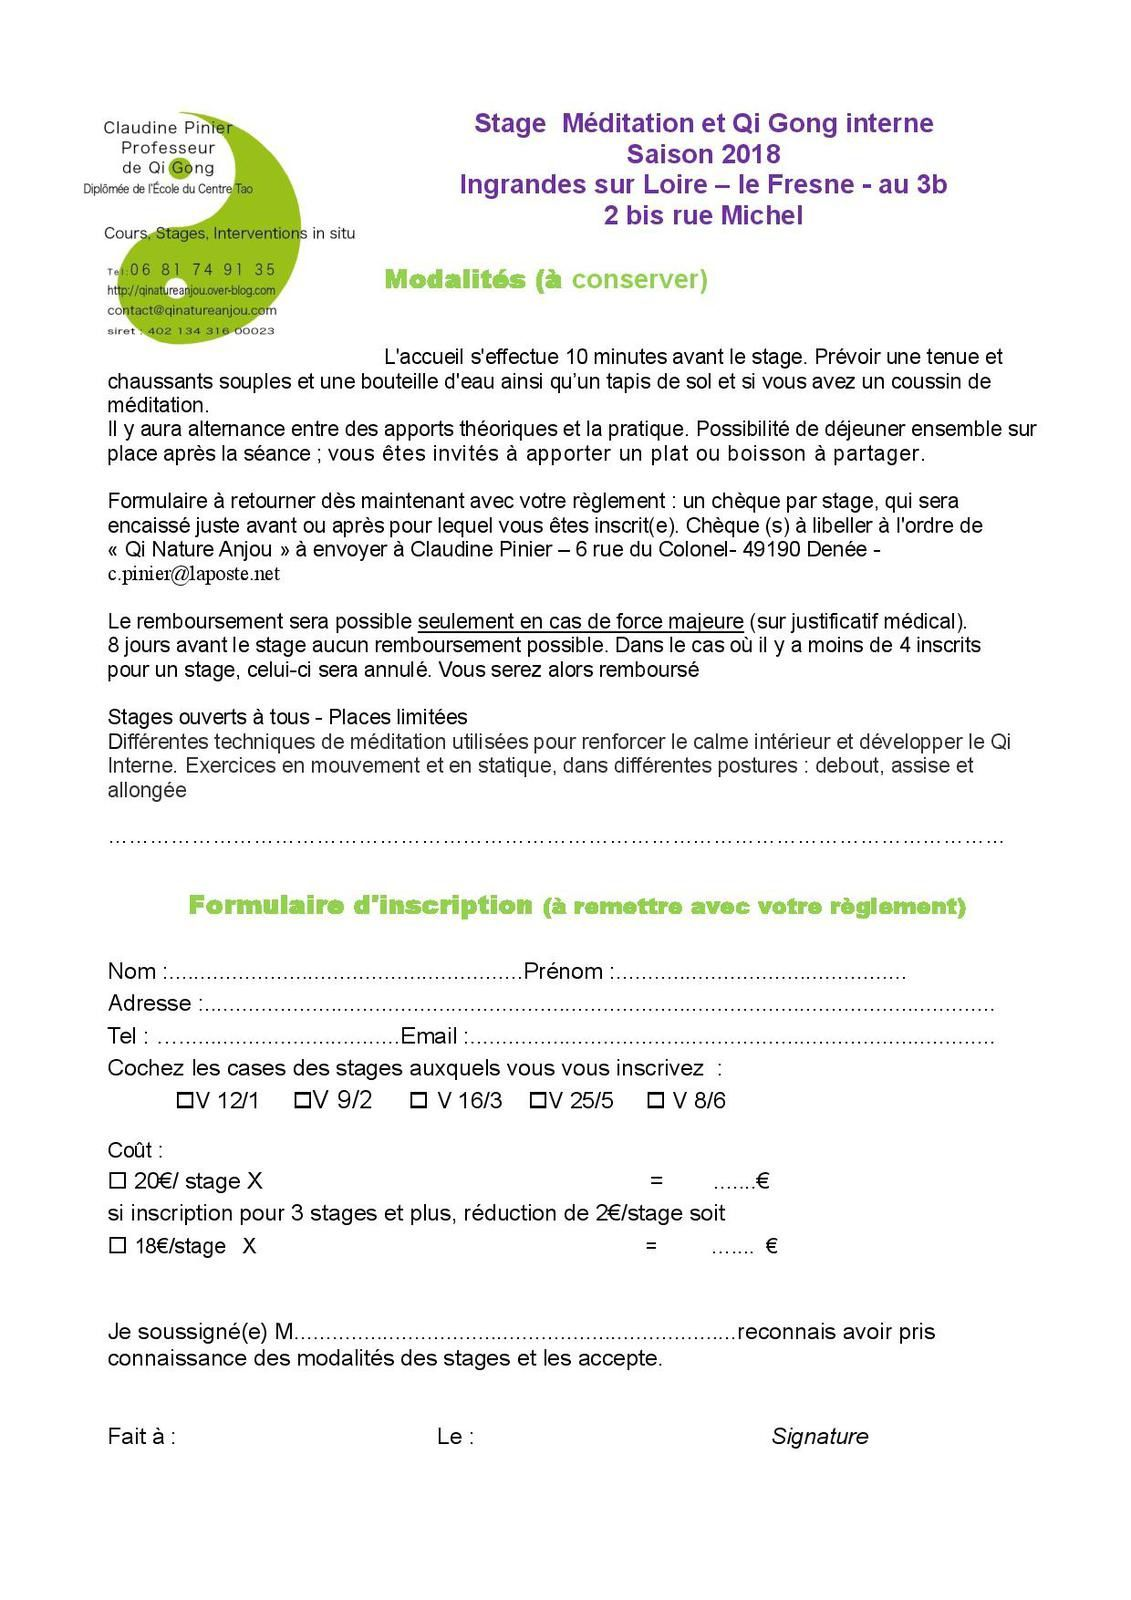 bulletin d'inscription cours méditation et Qi gong interne à Ingrandes